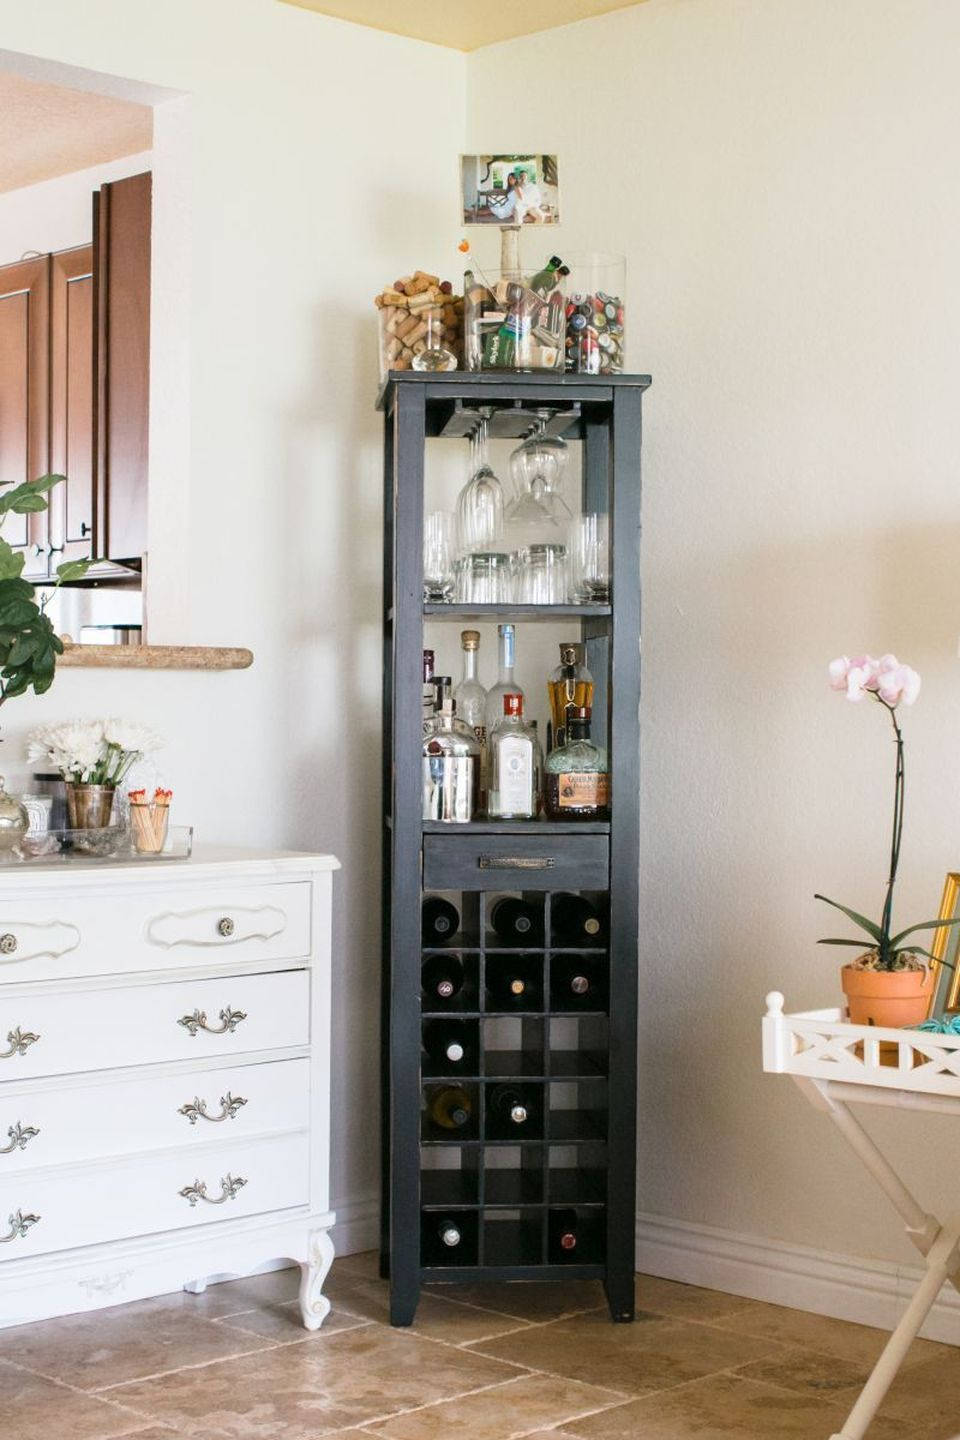 50 Best Corner Bar Cabinet Ideas for Coffee and Wine Places | Corner ...